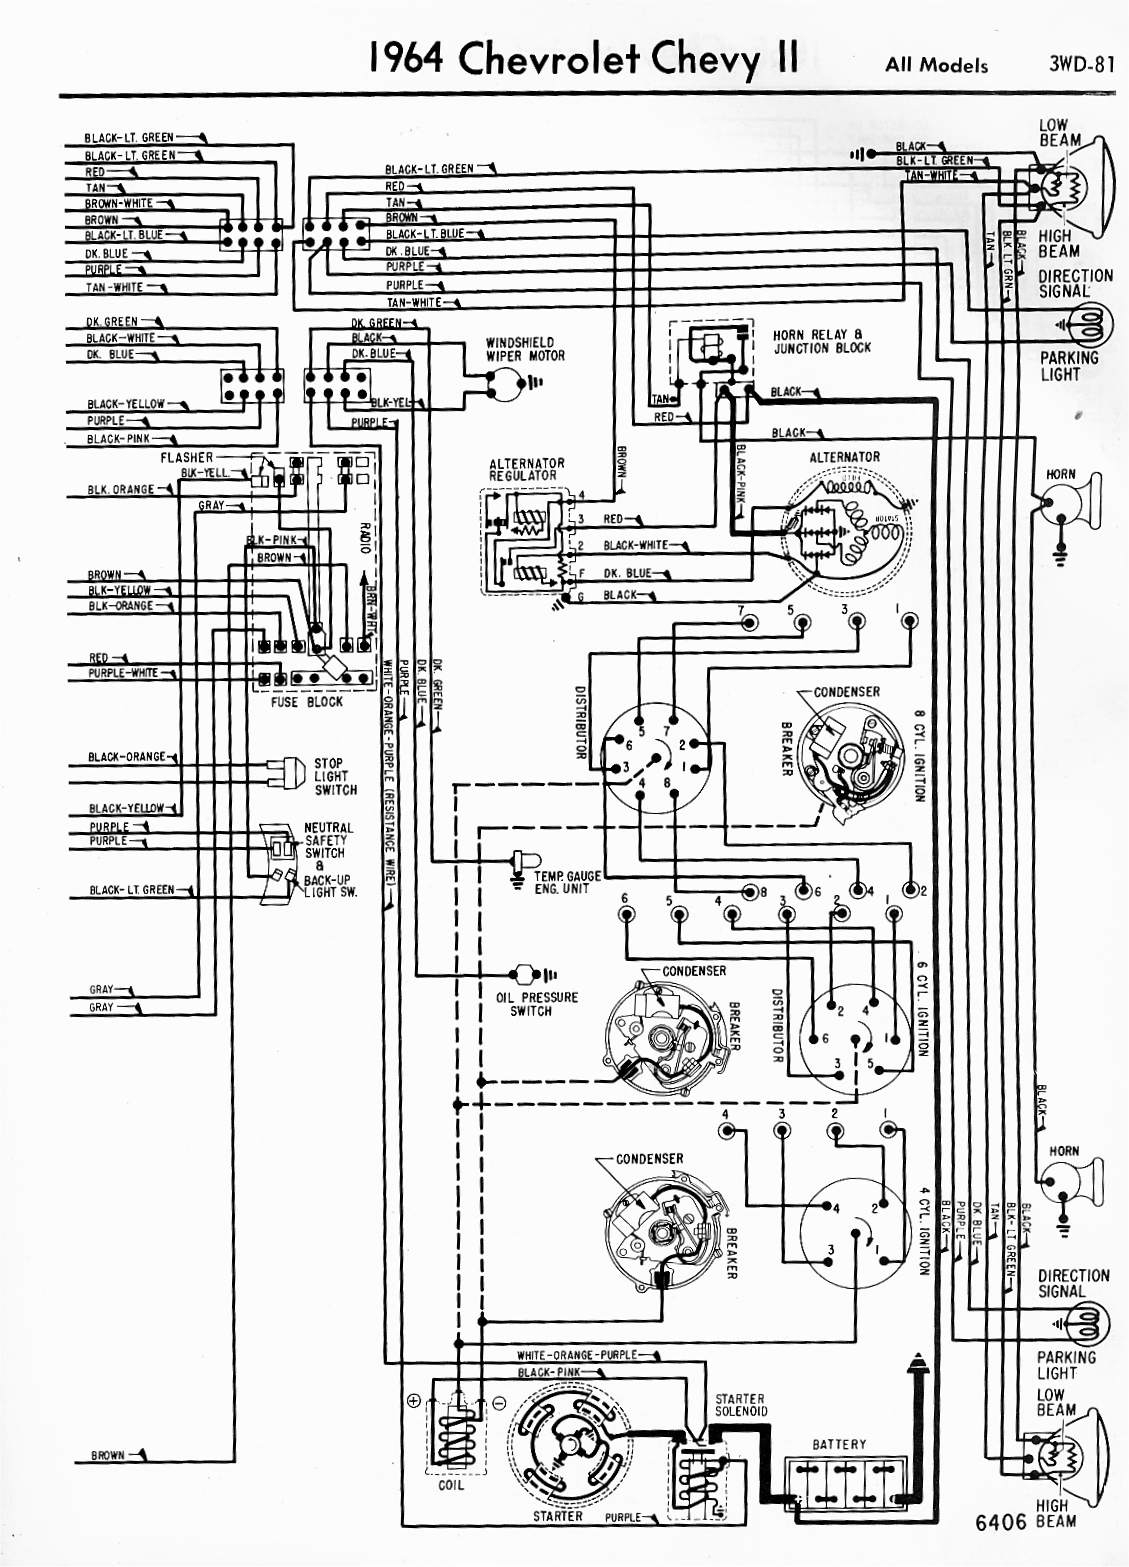 2005 Impala Ignition Switch Wiring Diagram Download